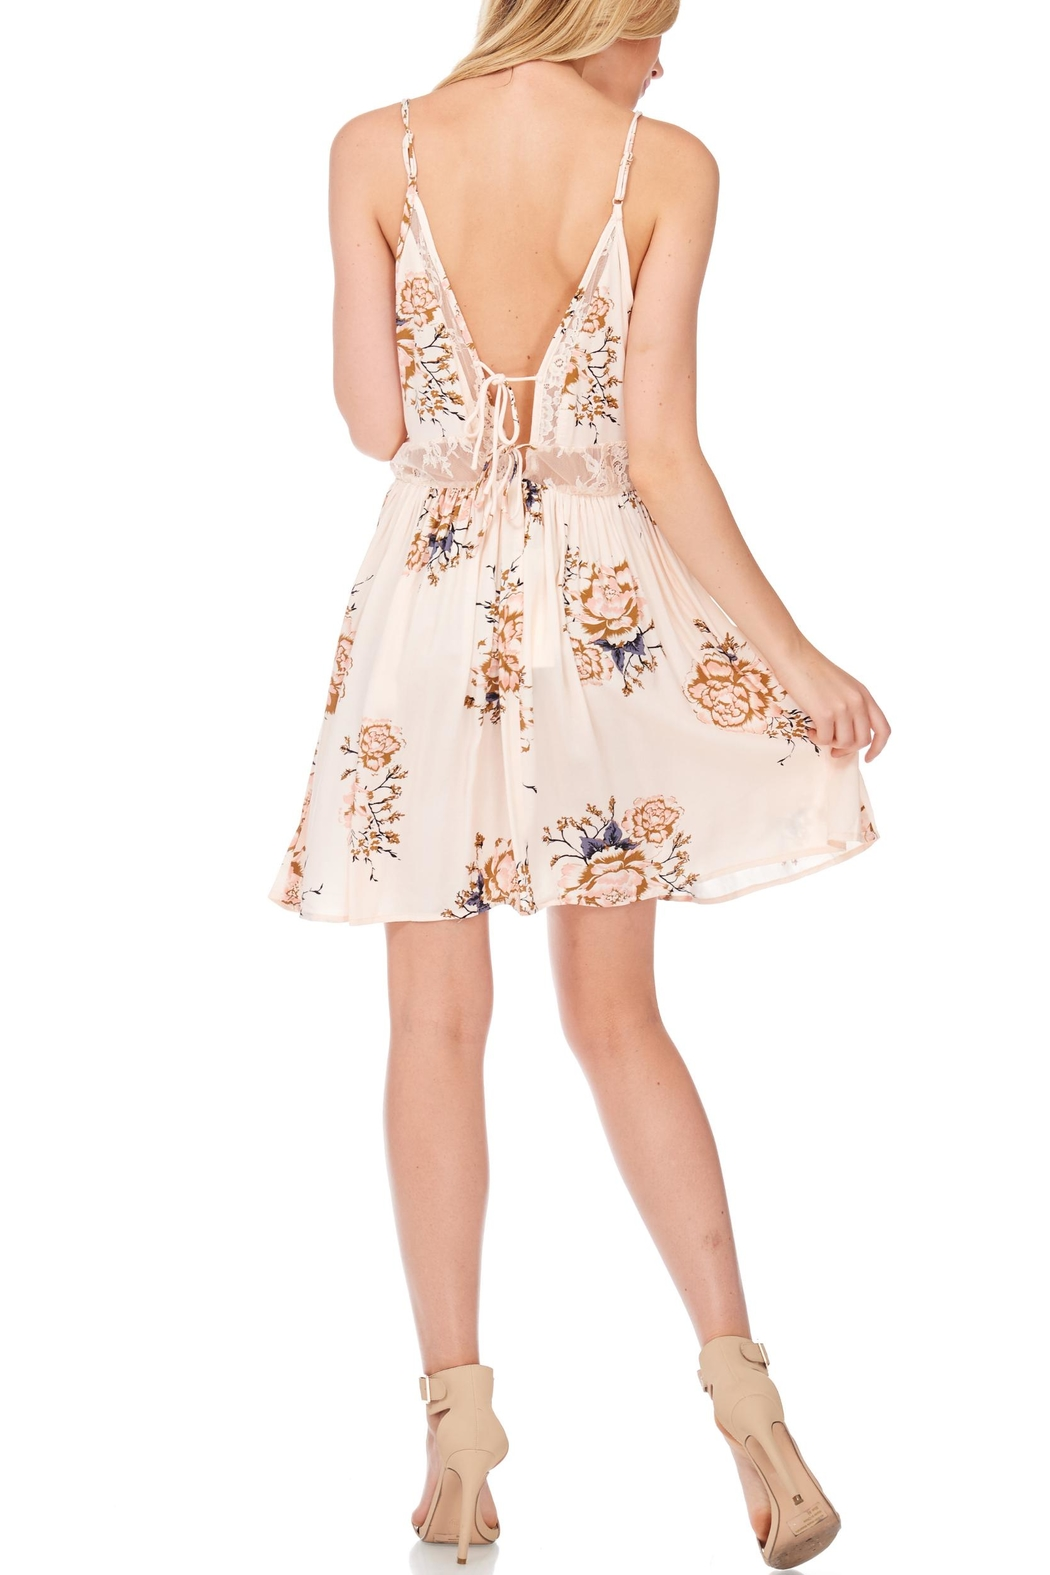 Anama Lace-Insert Floral Mini-Dress - Side Cropped Image